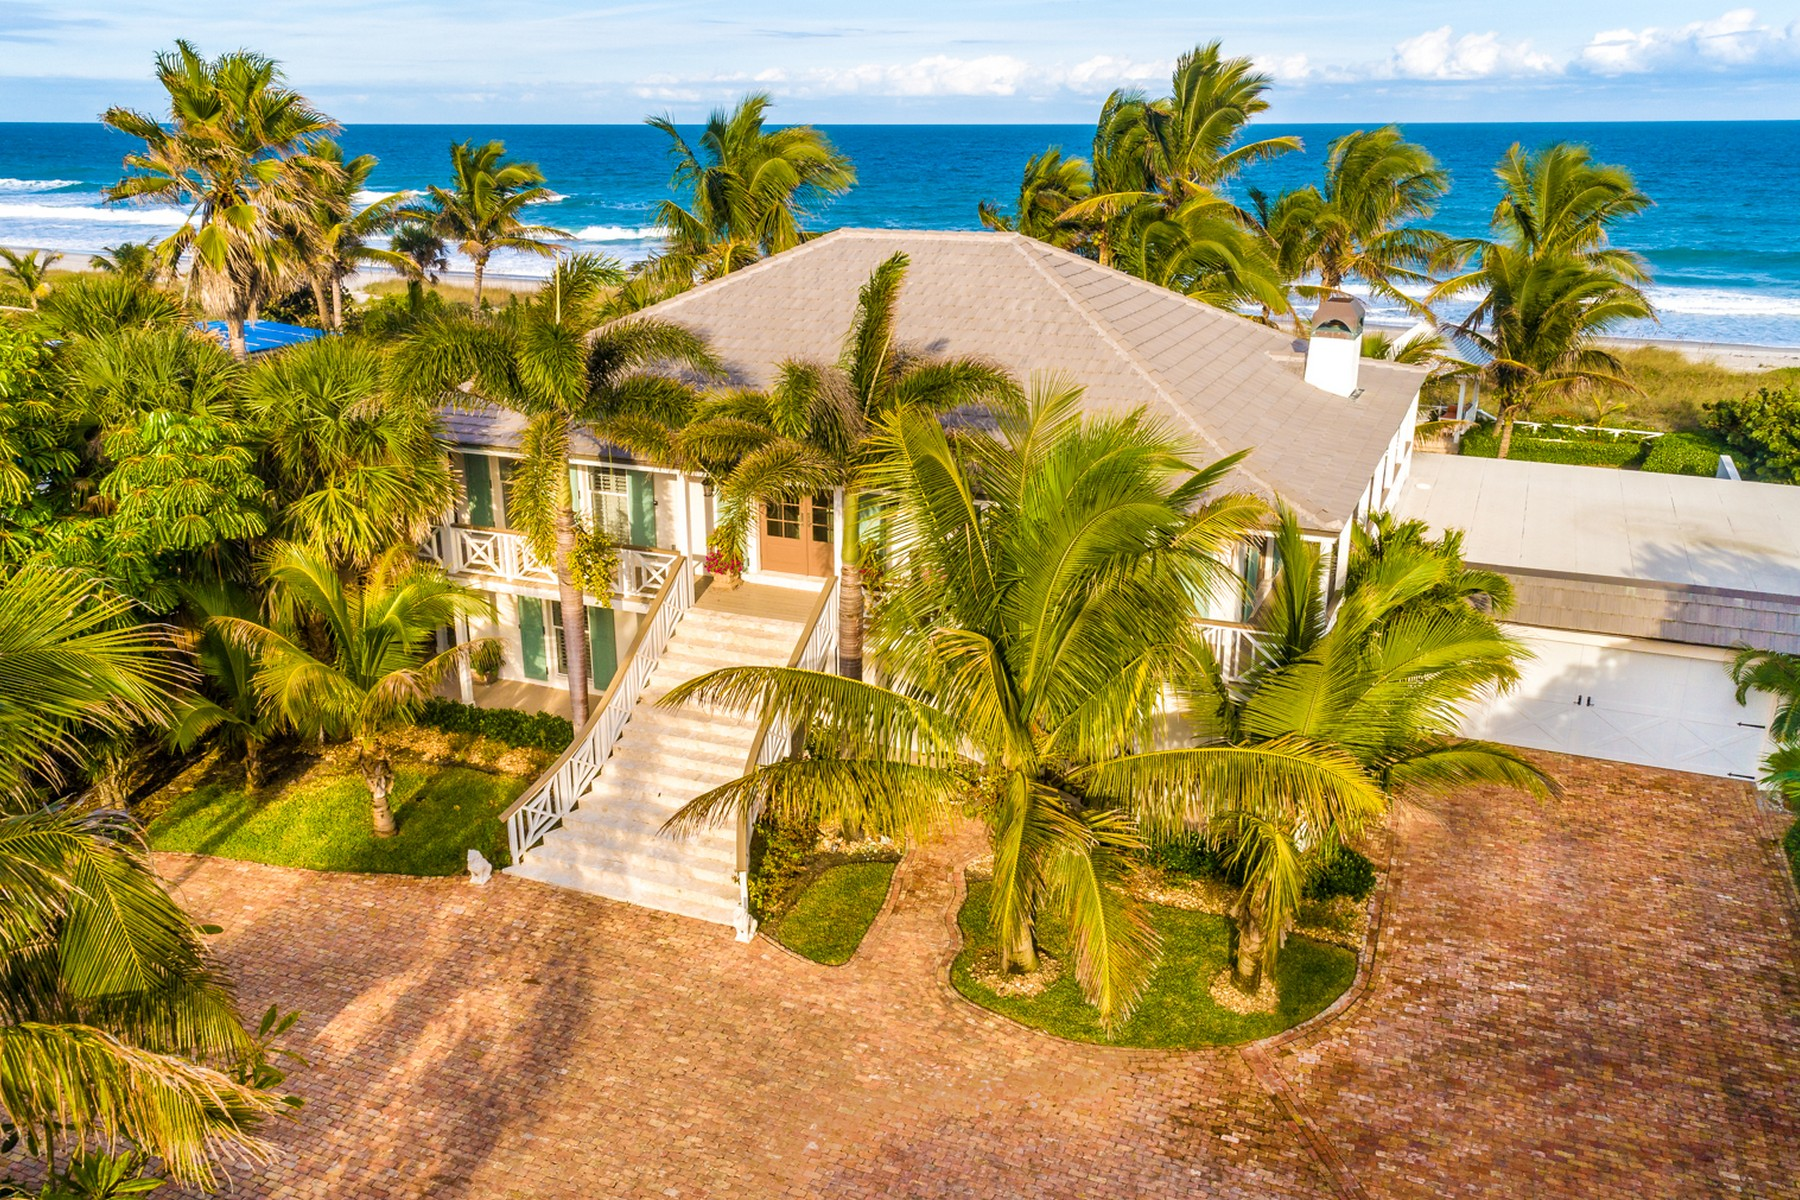 Частный односемейный дом для того Продажа на Beautiful Oceanfront estate property in rarely available Indialantic by the Sea. 1517 S Miramar Avenue Indialantic, Флорида 32903 Соединенные Штаты